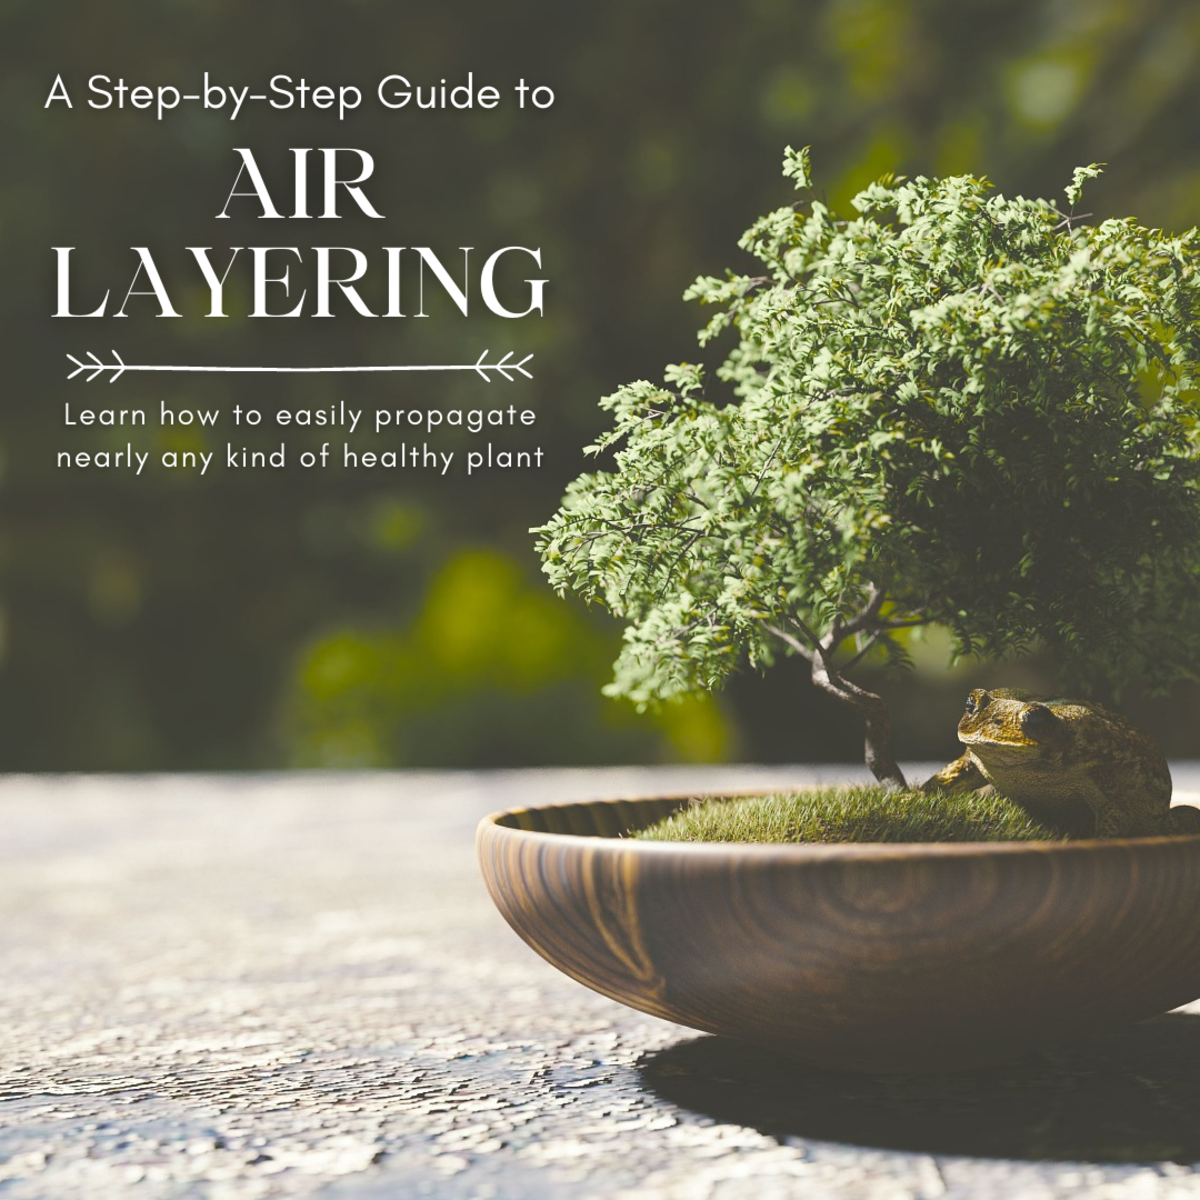 This article will break down the process of air layering a plant step by step.